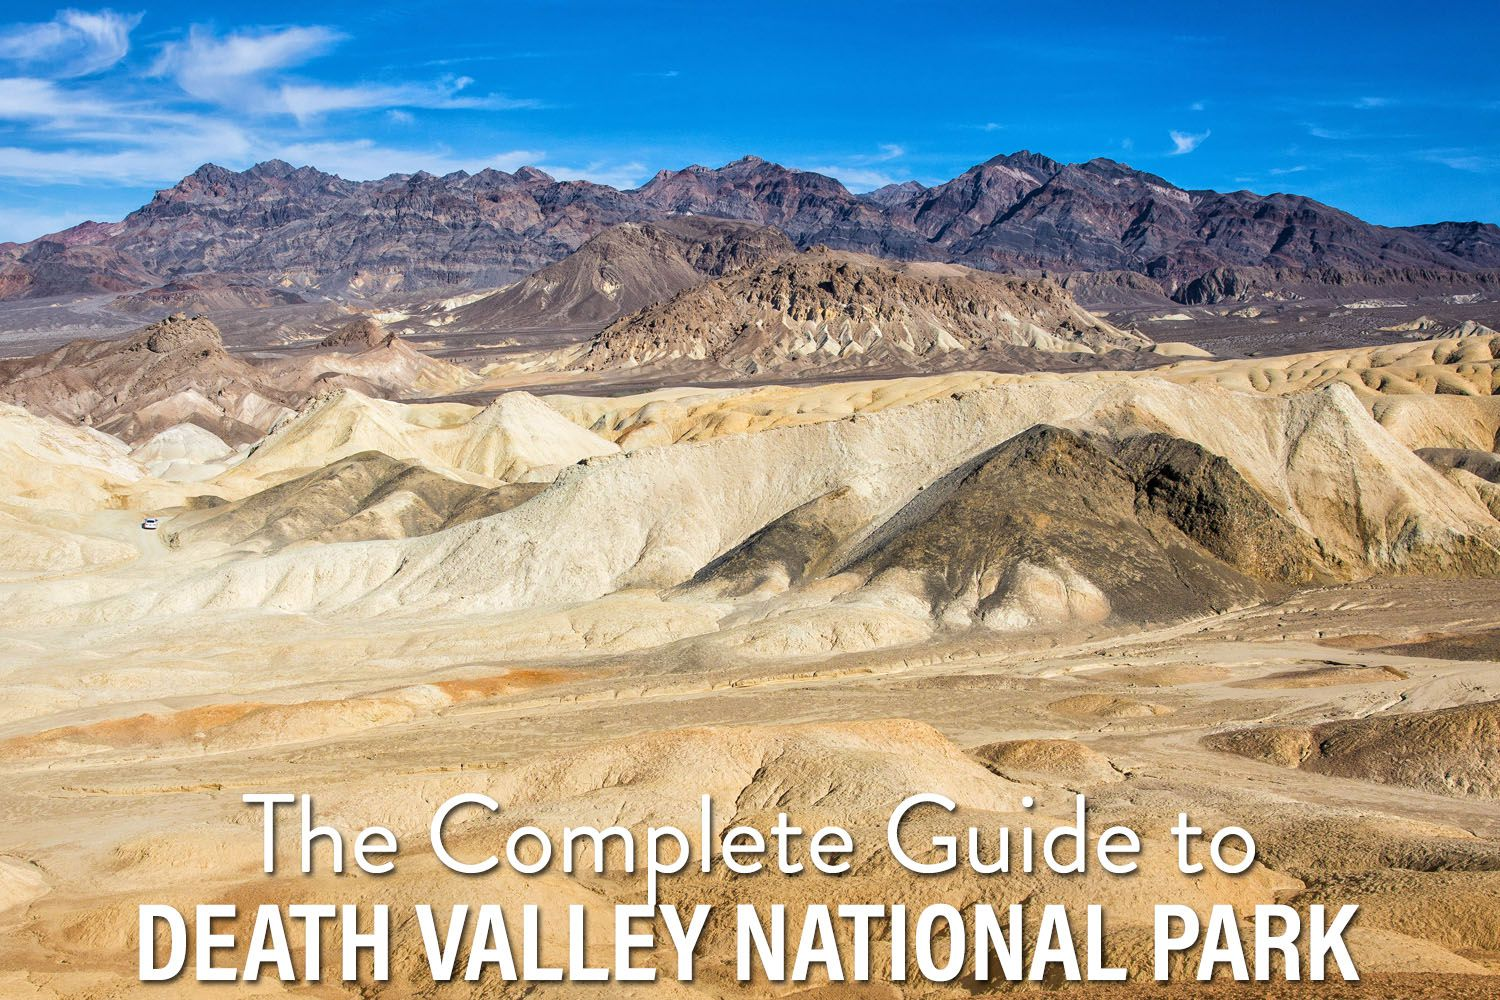 Guide to Death Valley